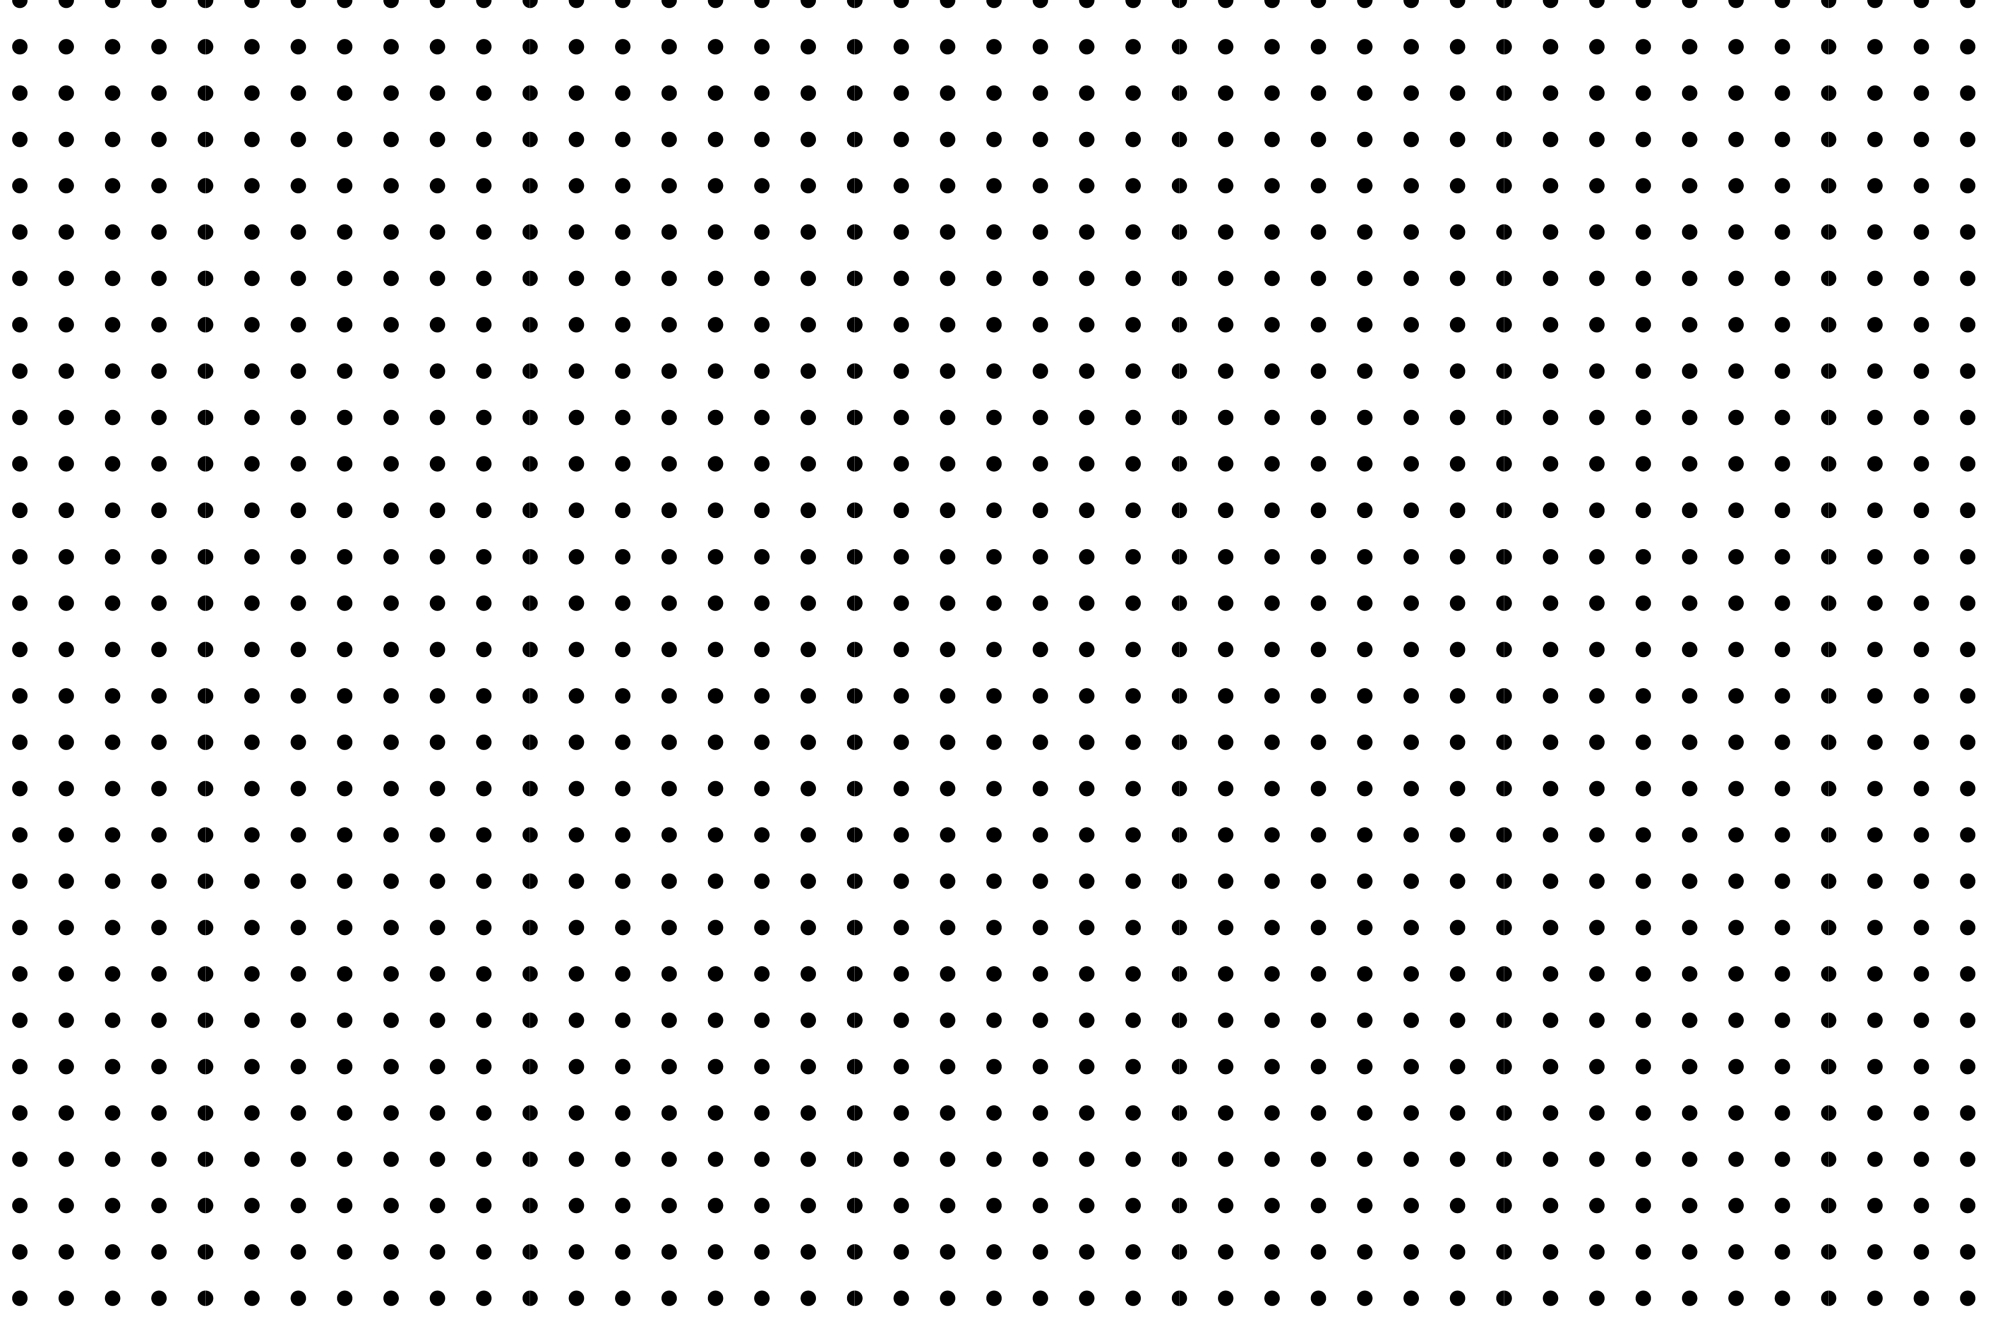 Set of dotted seamless patterns. example image 20